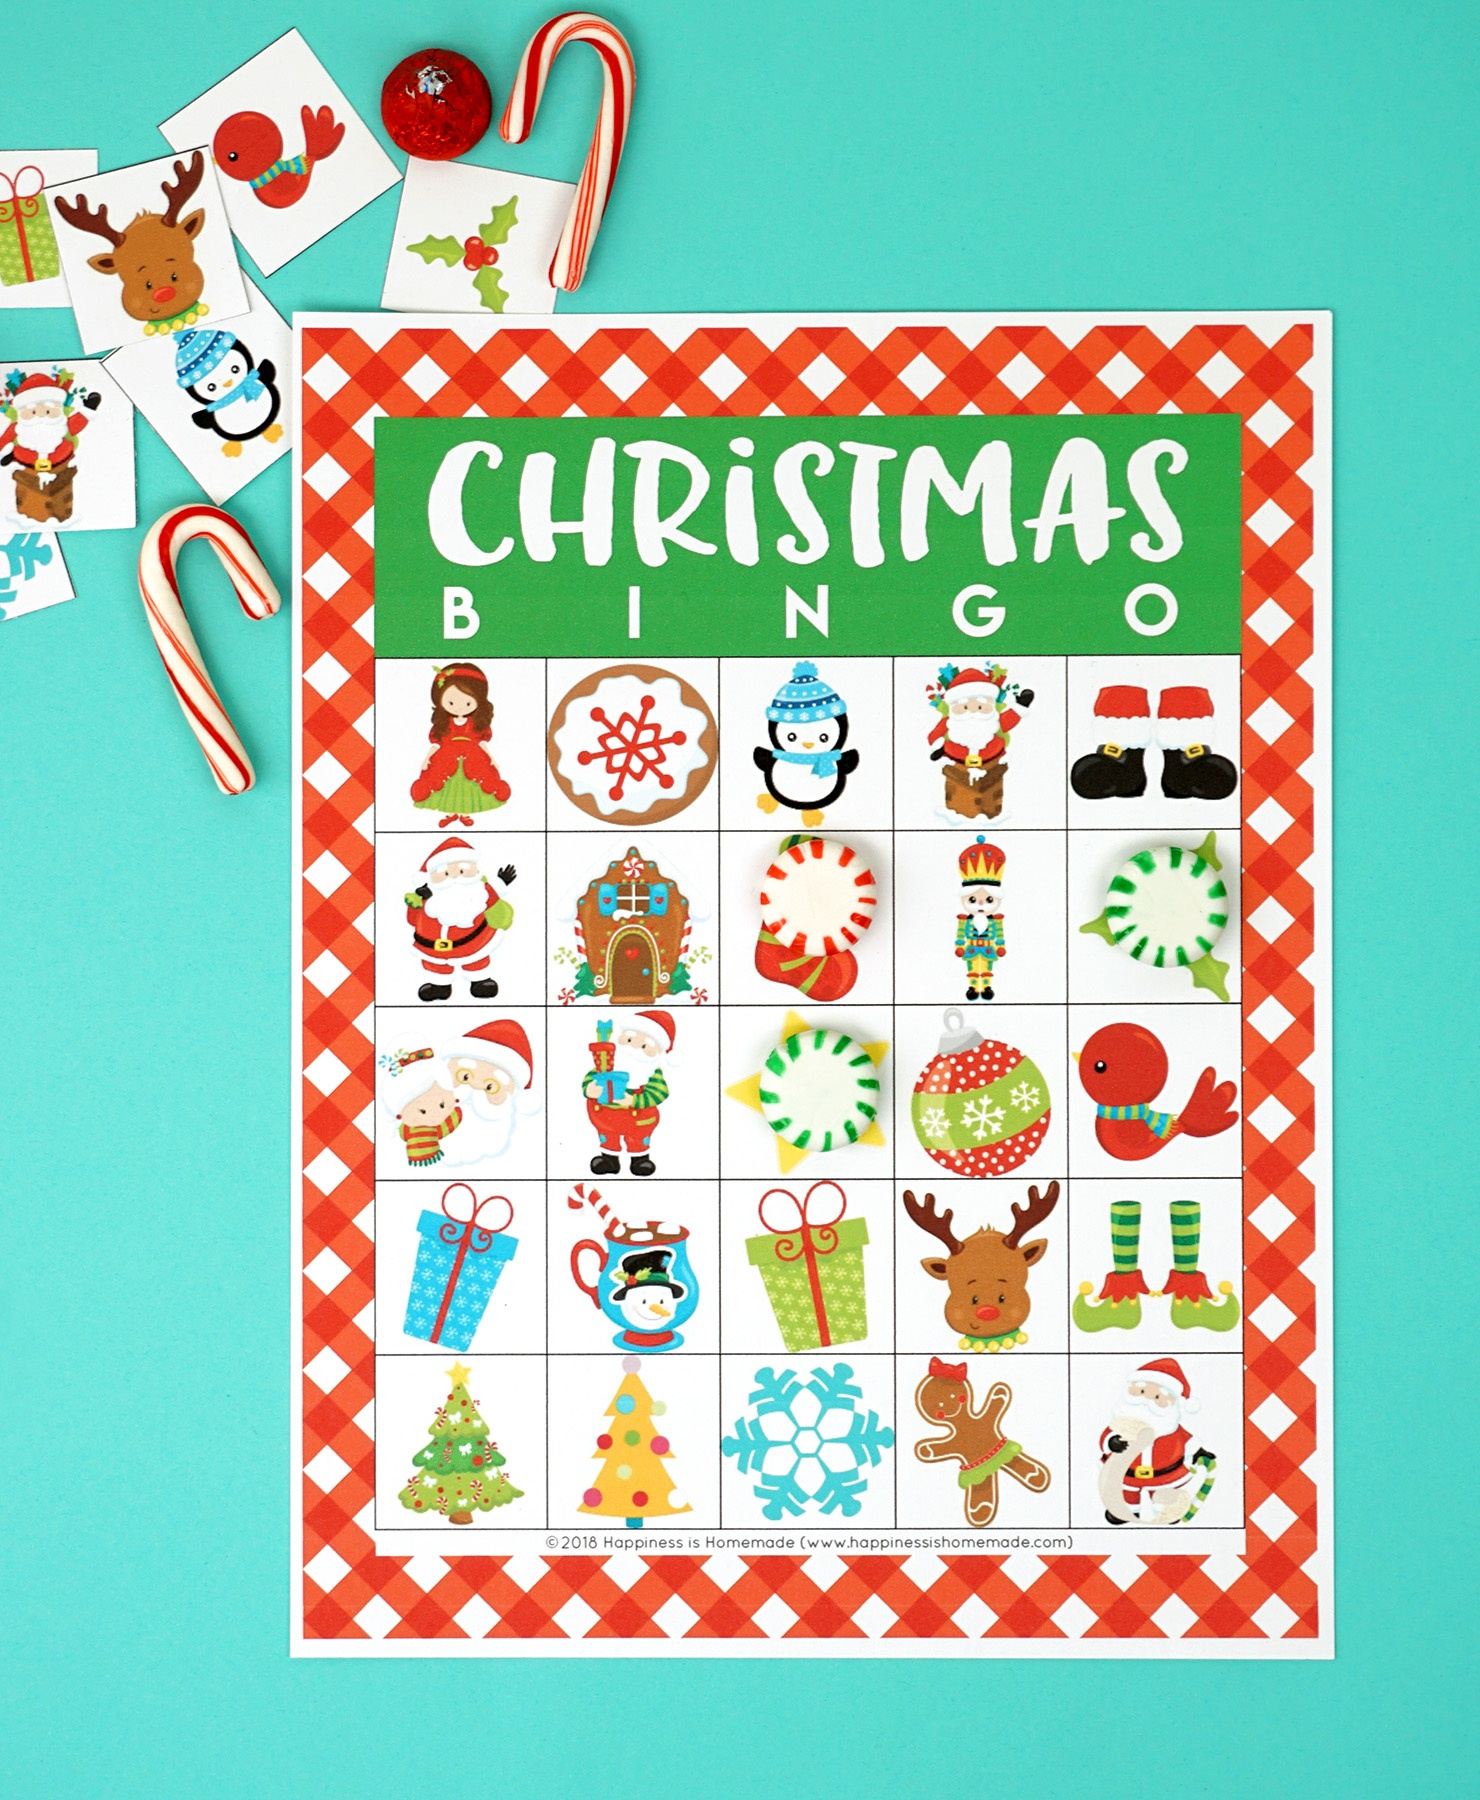 Printable Christmas Bingo Game - Happiness Is Homemade - Free Christmas Bingo Game Printable